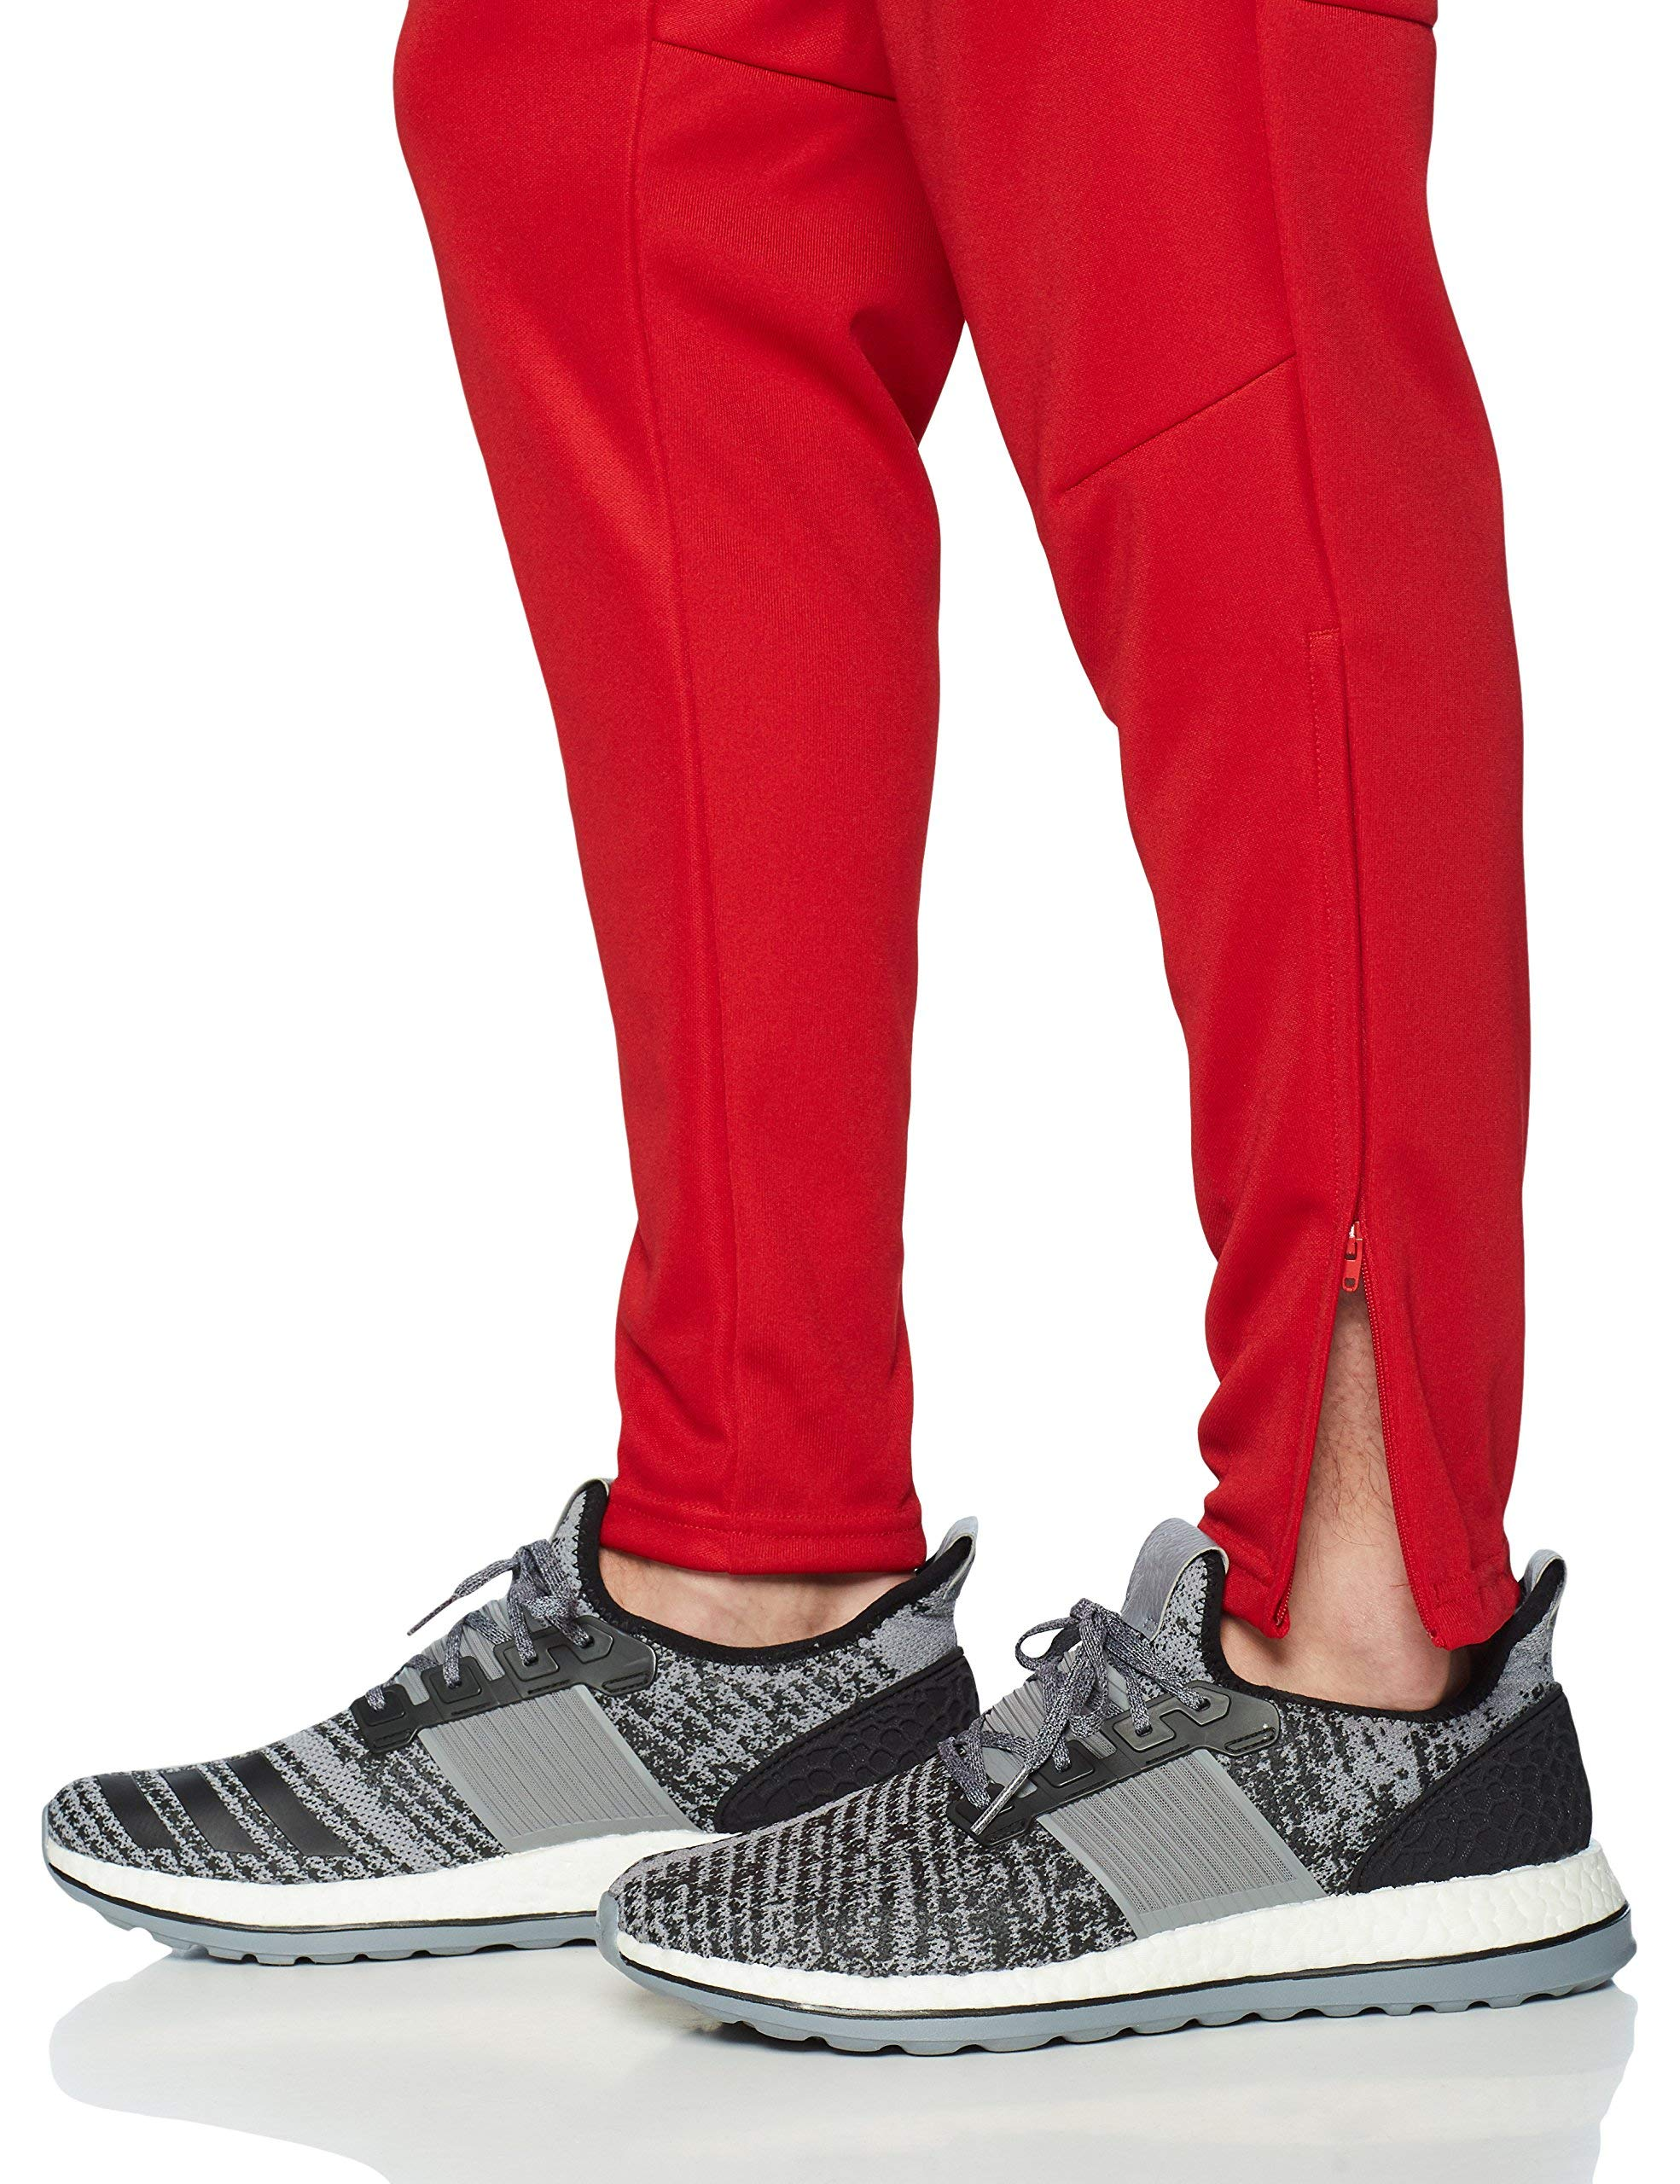 adidas Men's Soccer Tiro 17 Pants, Small, Power Red/White by adidas (Image #4)